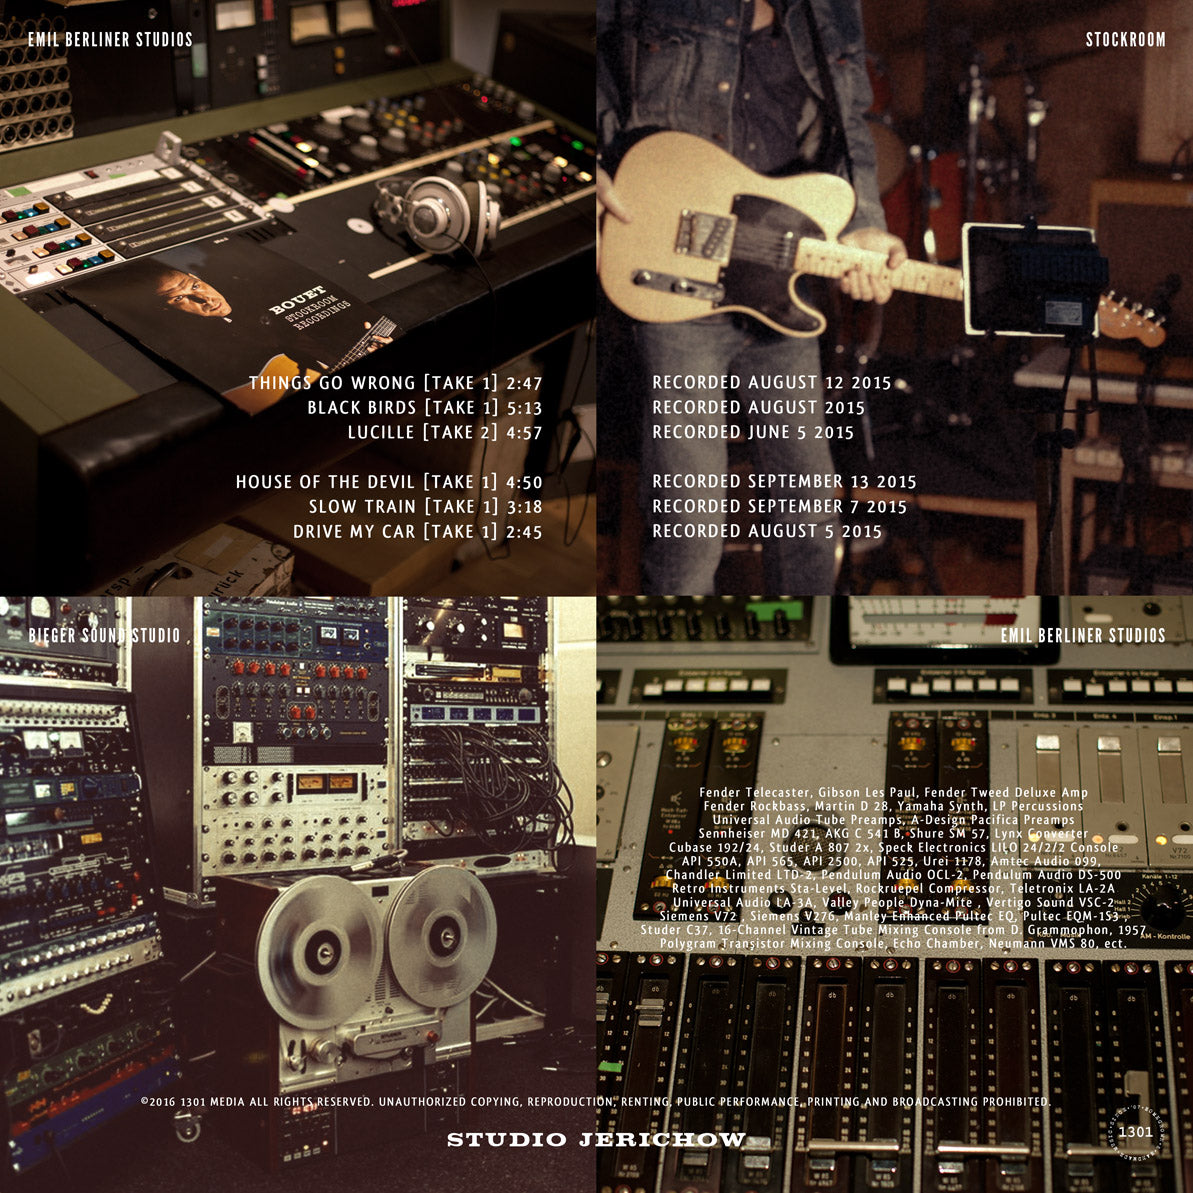 Stockroom Recordings II Custom Gold Edition